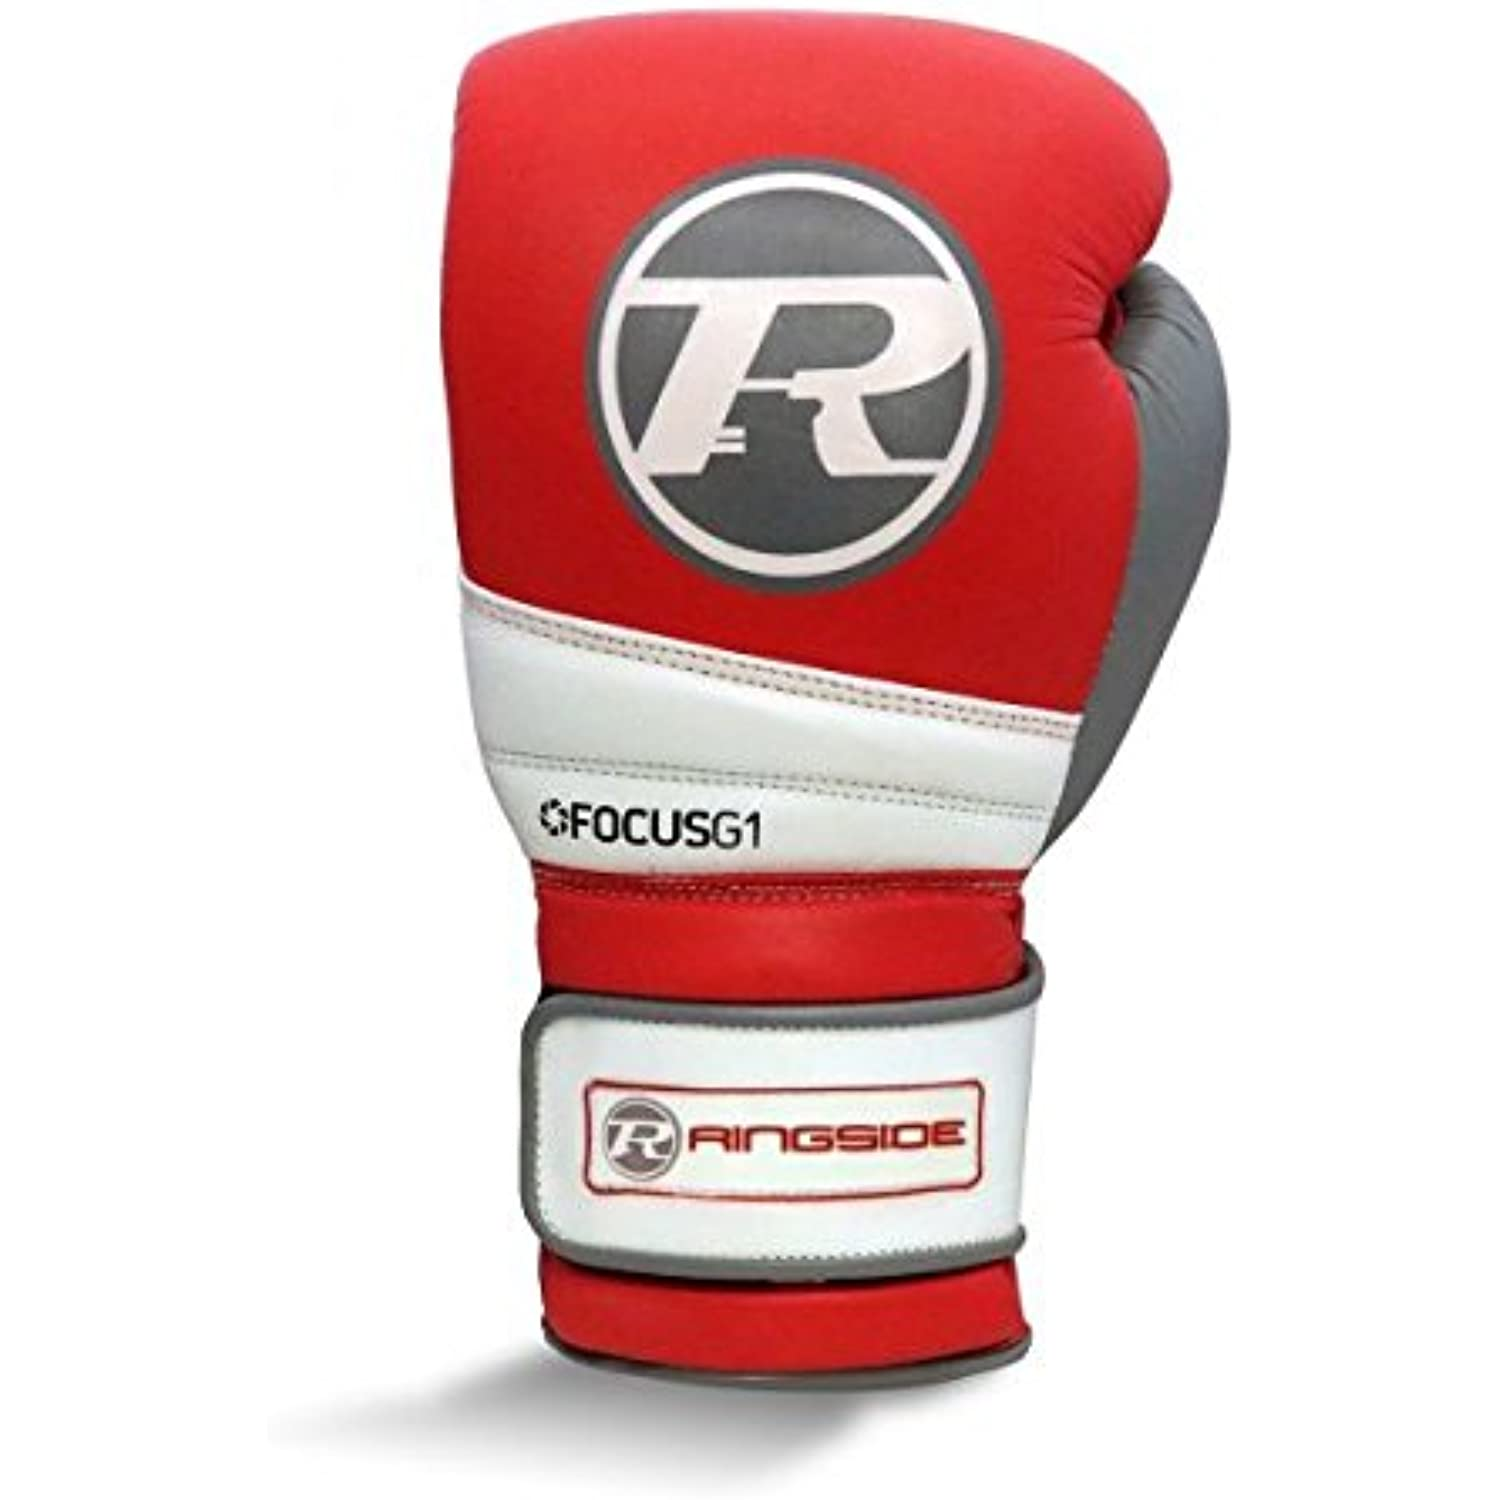 Ringside Focus G1 Boxing  Gloves Red  Boxing Parent 9f7f0c